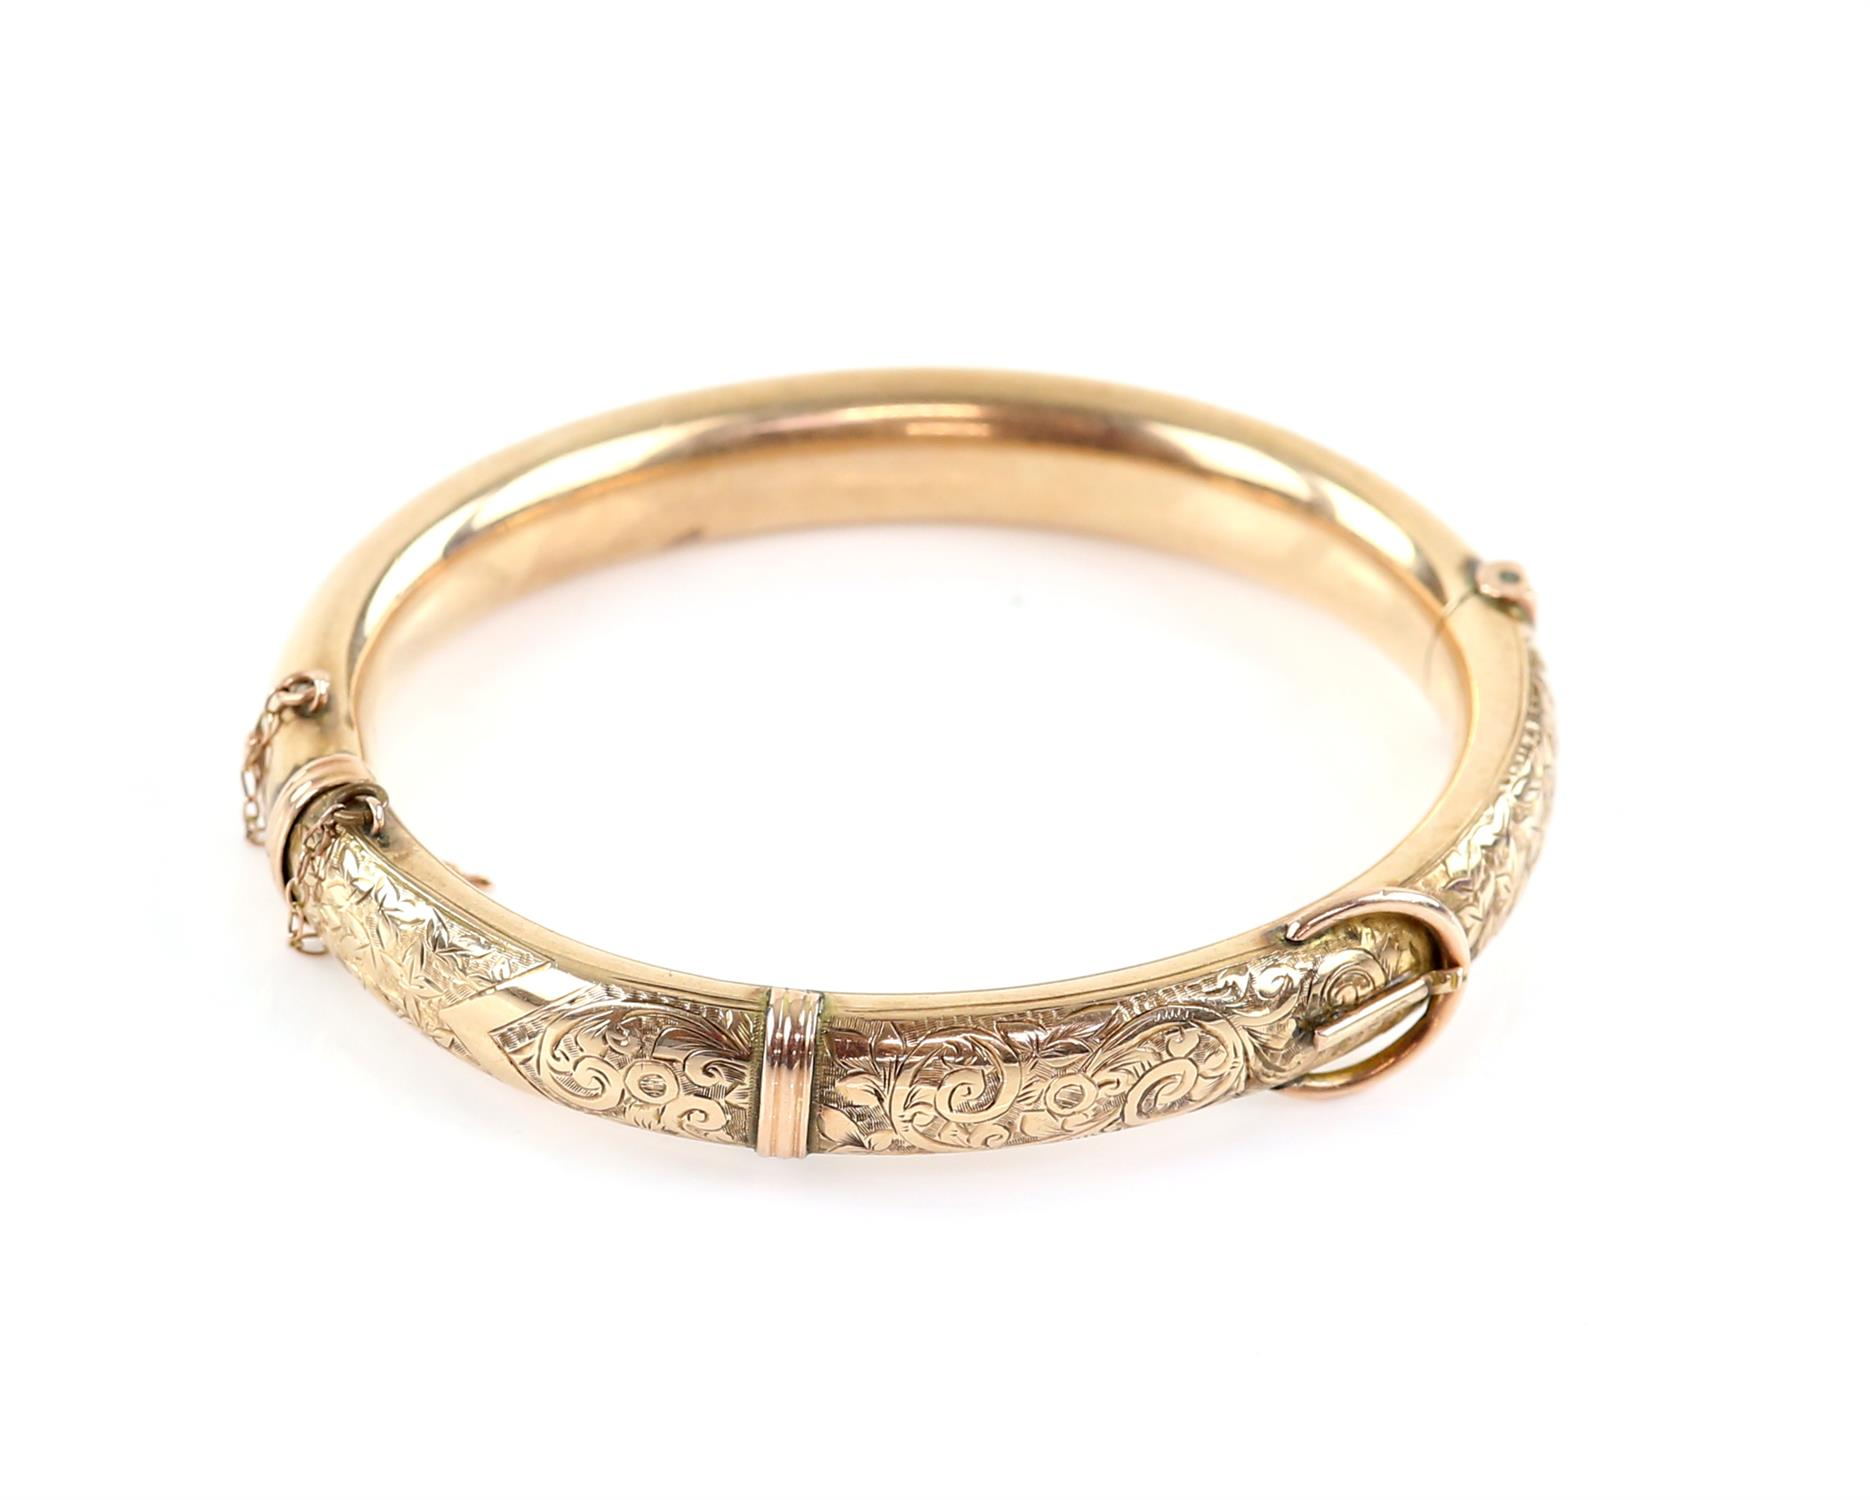 Edwardian gold buckle bangle, engraved with scrolling motif and ivy leaf detailing,